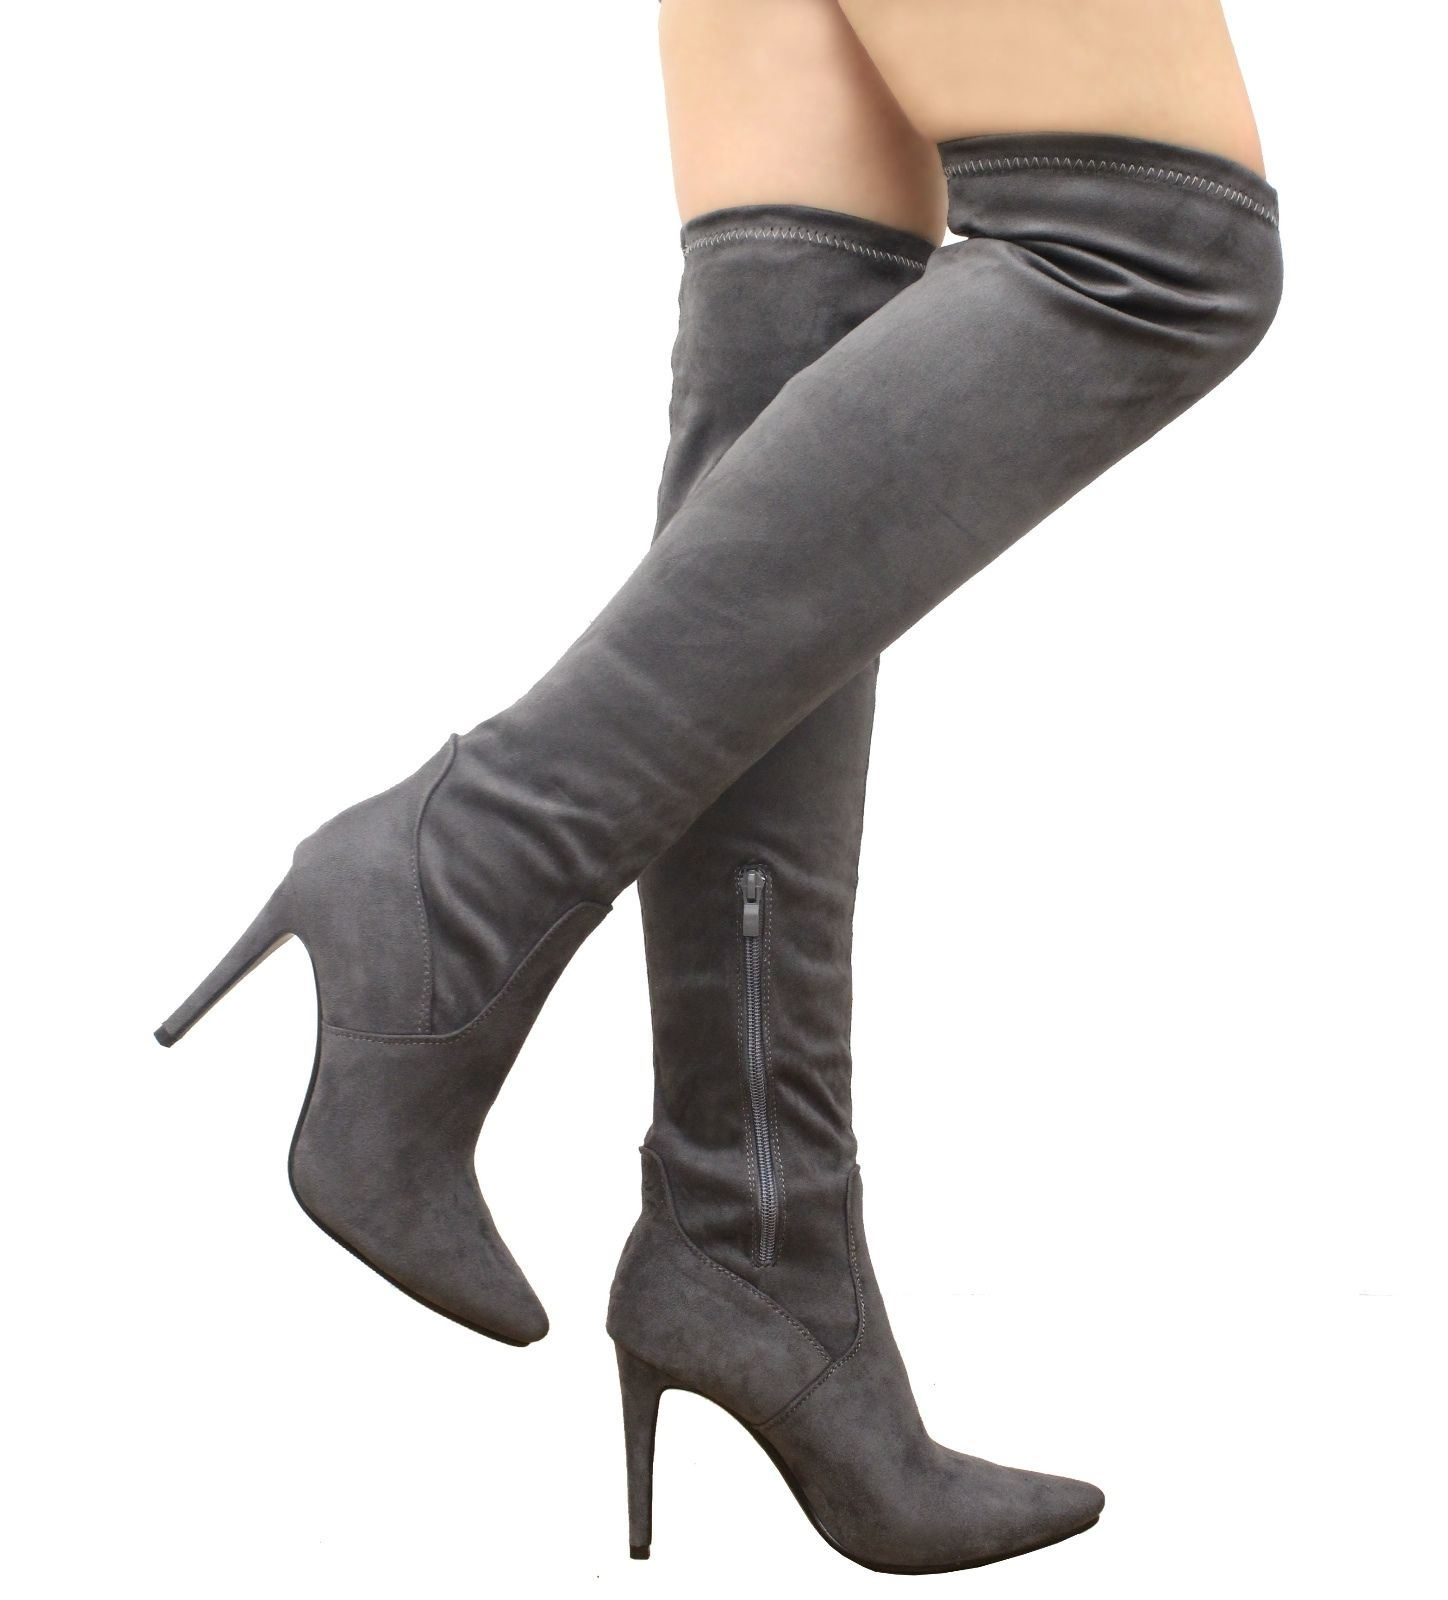 New Womens Over The Knee Thigh High Stiletto Heel Faux